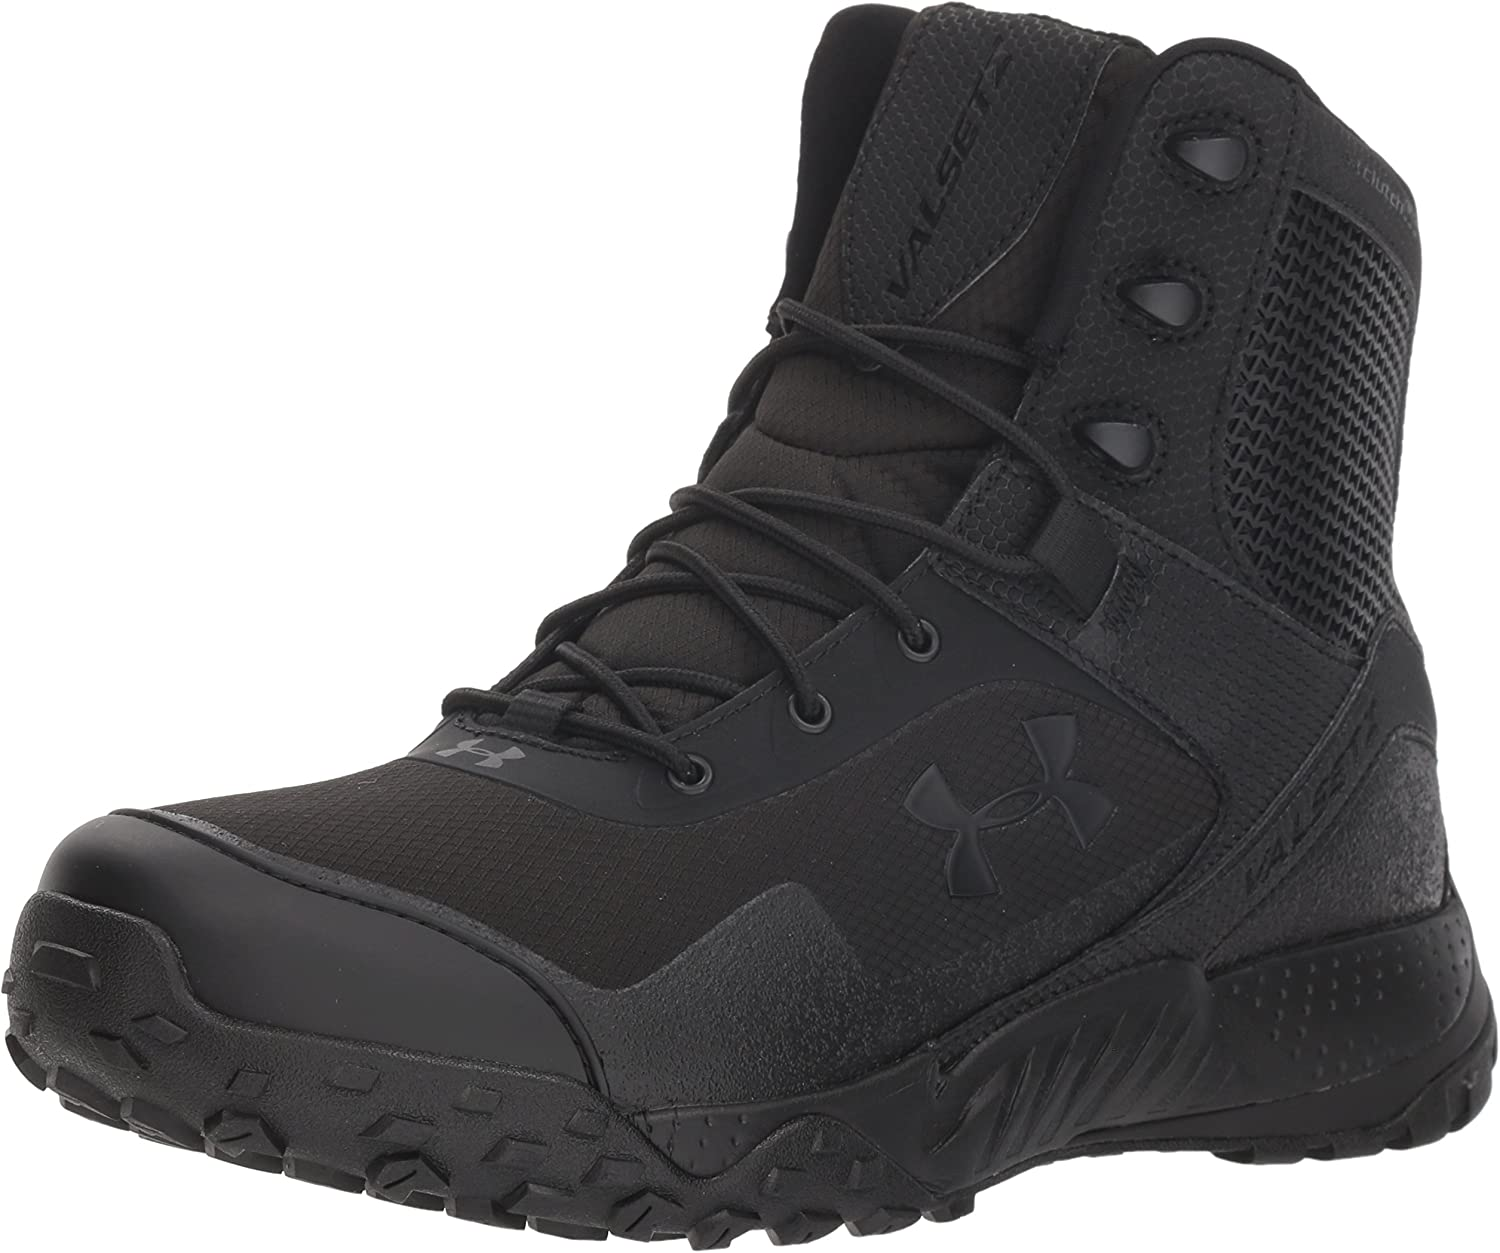 Under Armour Men's Valsetz Rts 1.5 Military and Tactical Boot: Shoes